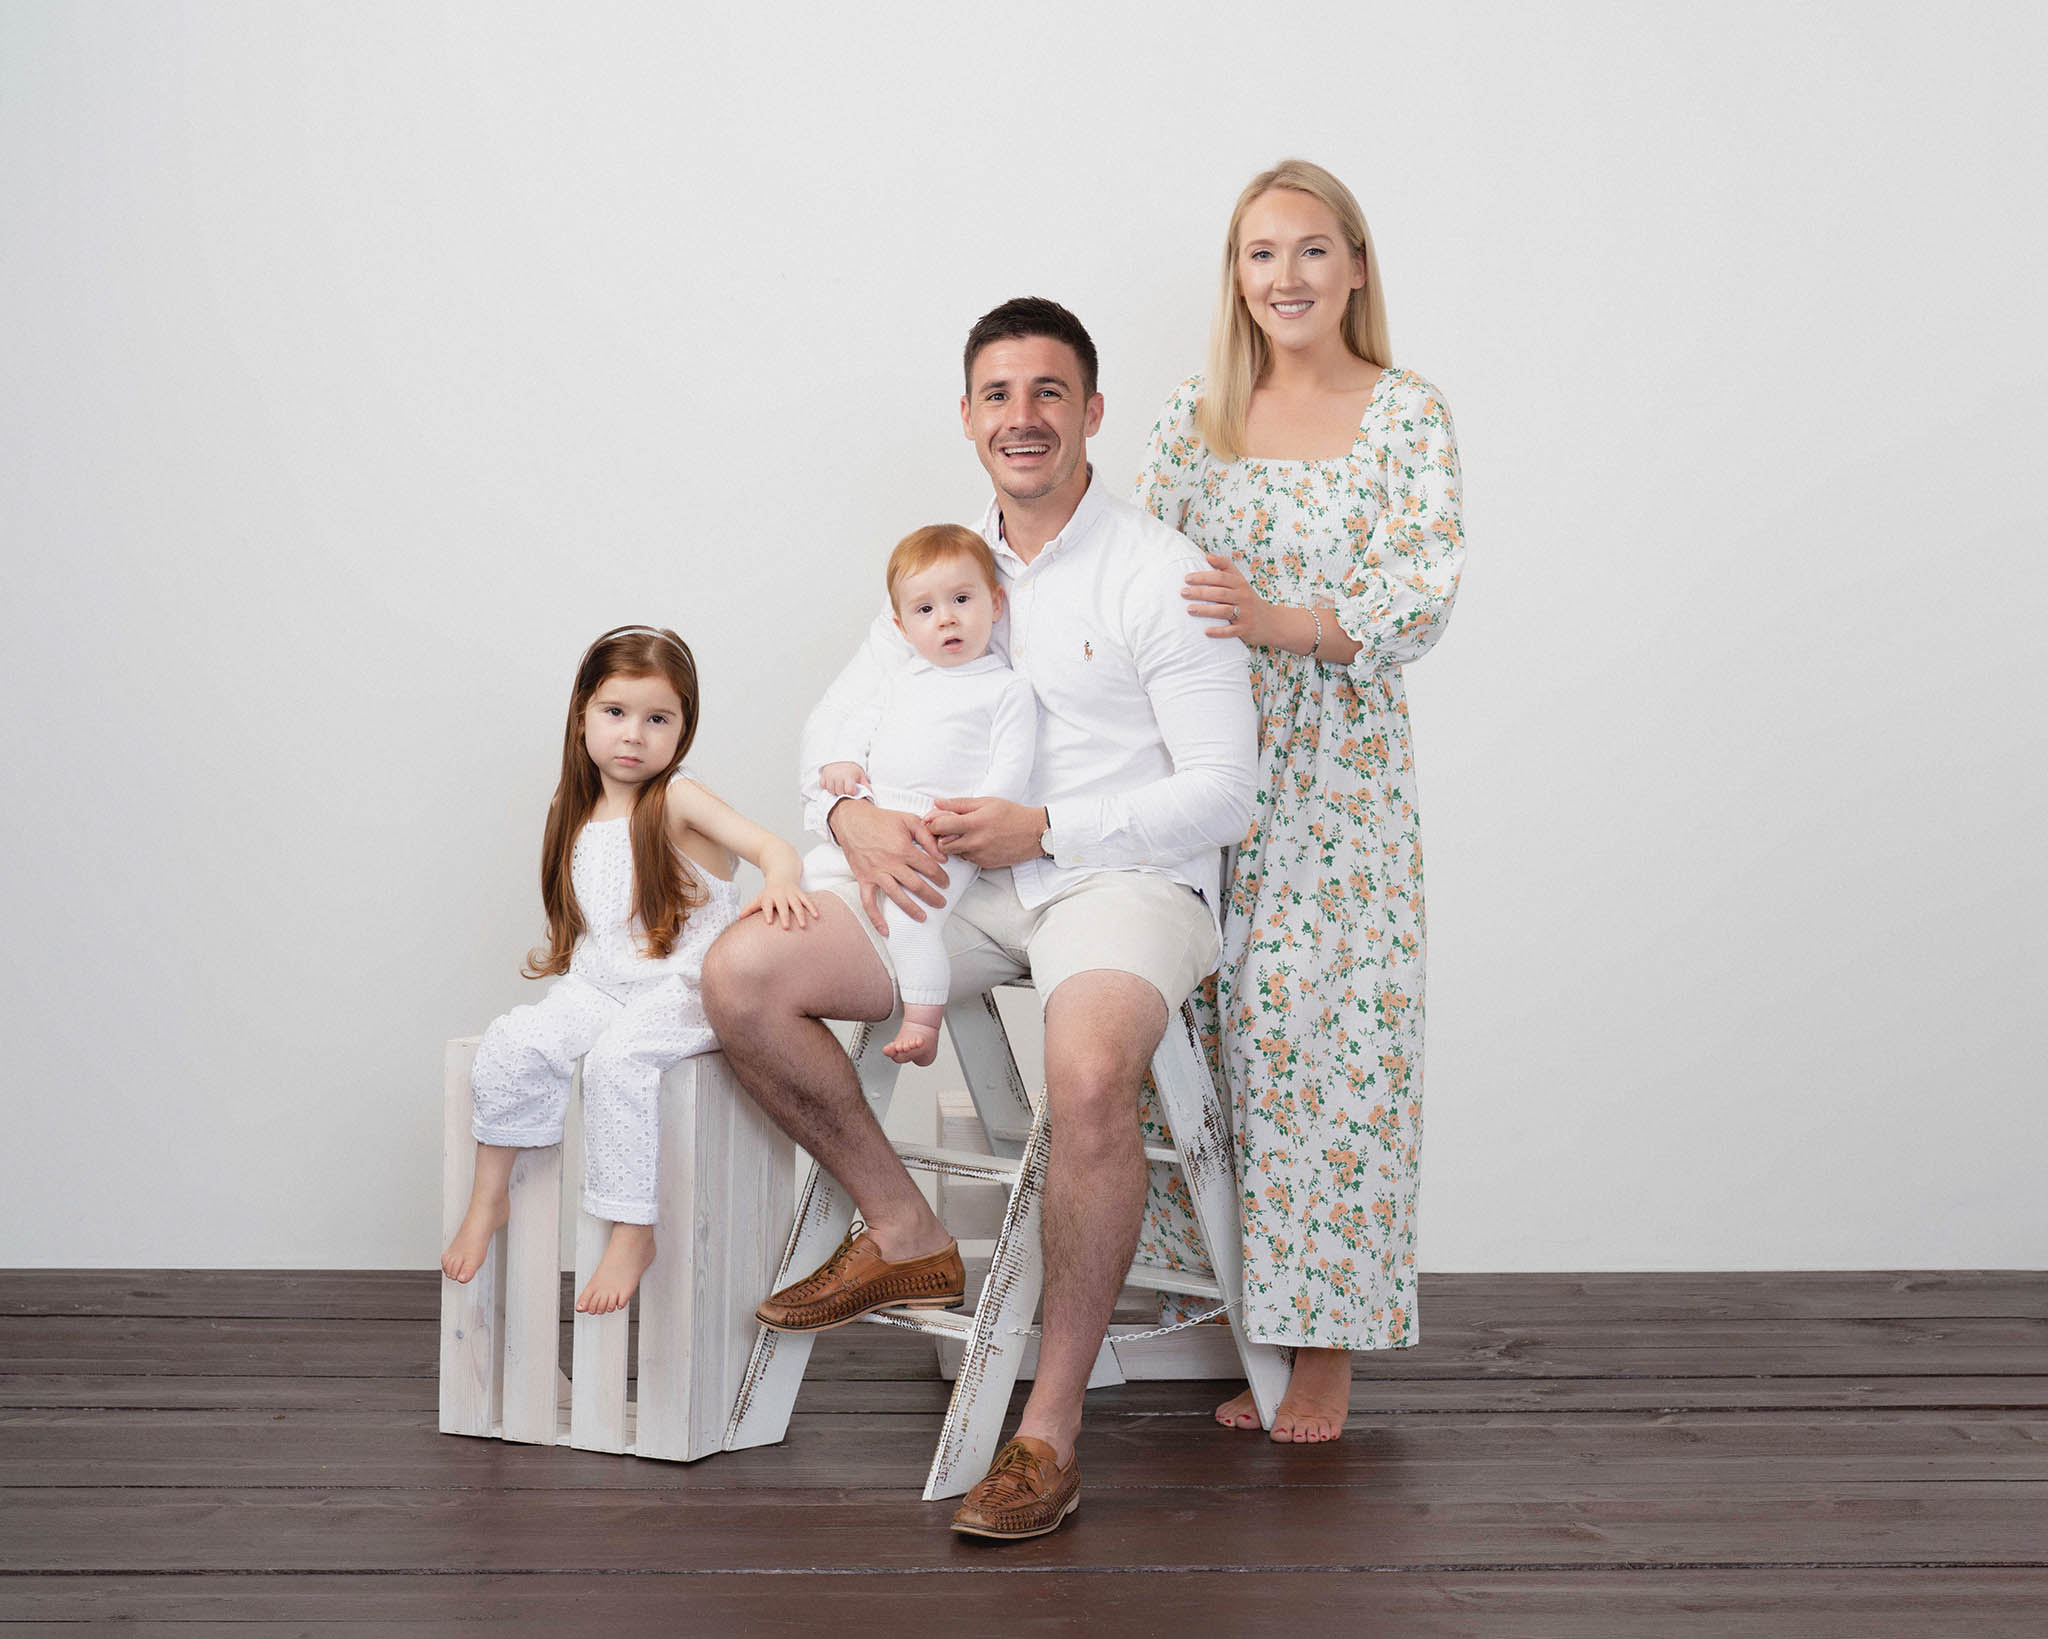 family of parents and two children wearing white photographed by Family photographer Lancashire